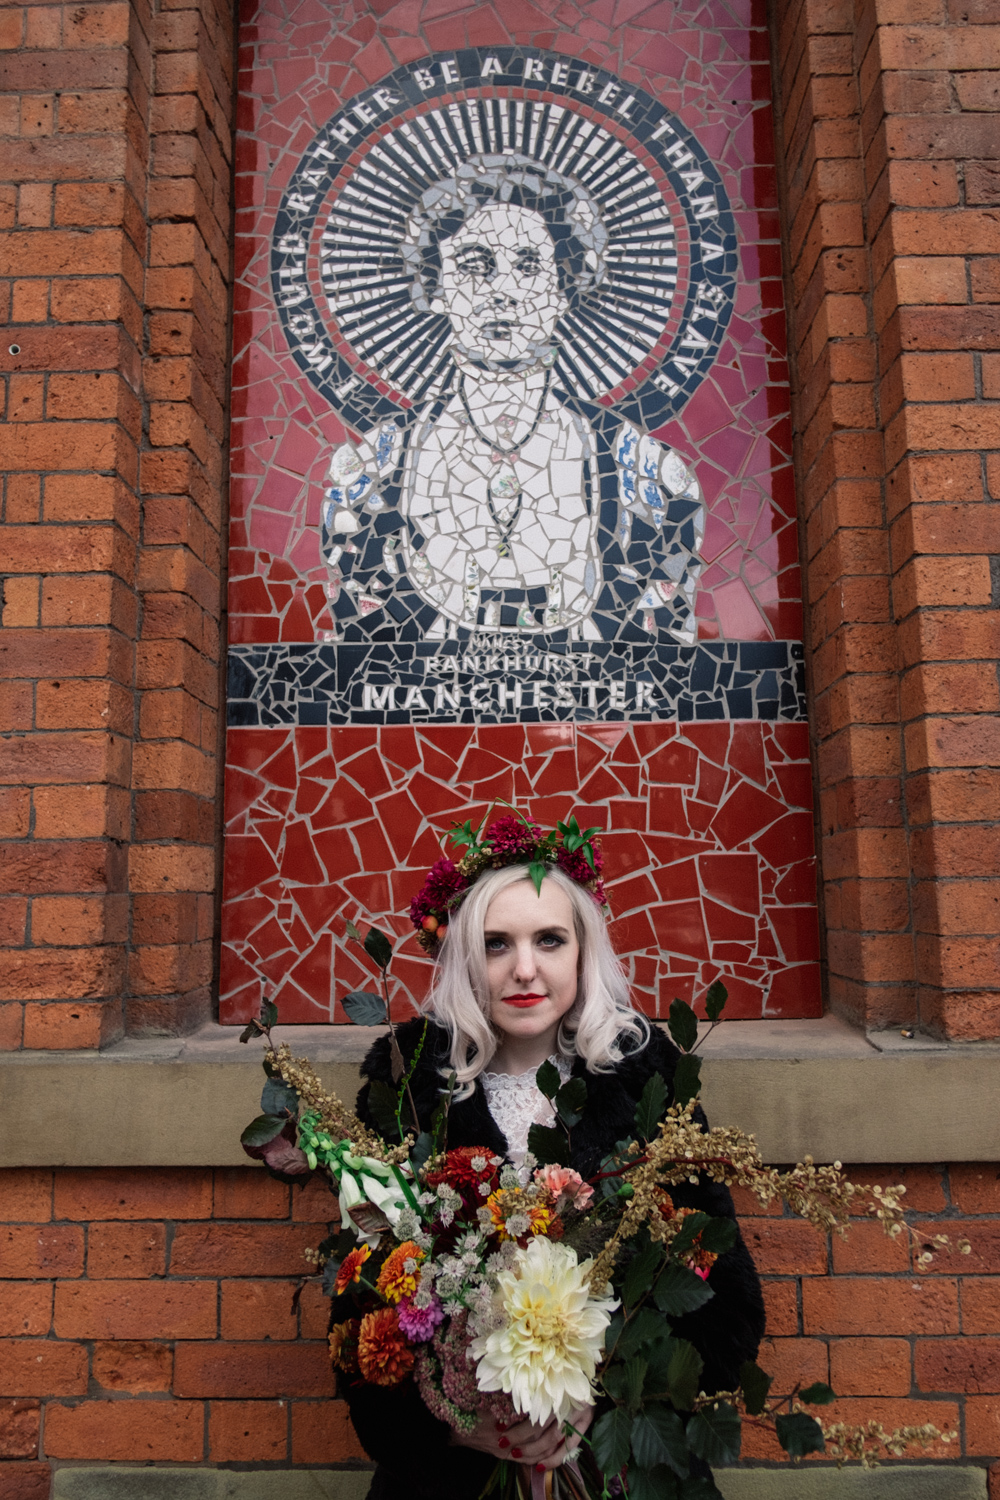 Martha stands in front of the Emmeline Pankhurst tribute Afflecks palace in Manchester wearing a flower crown and wedding dress by Wilderness bride